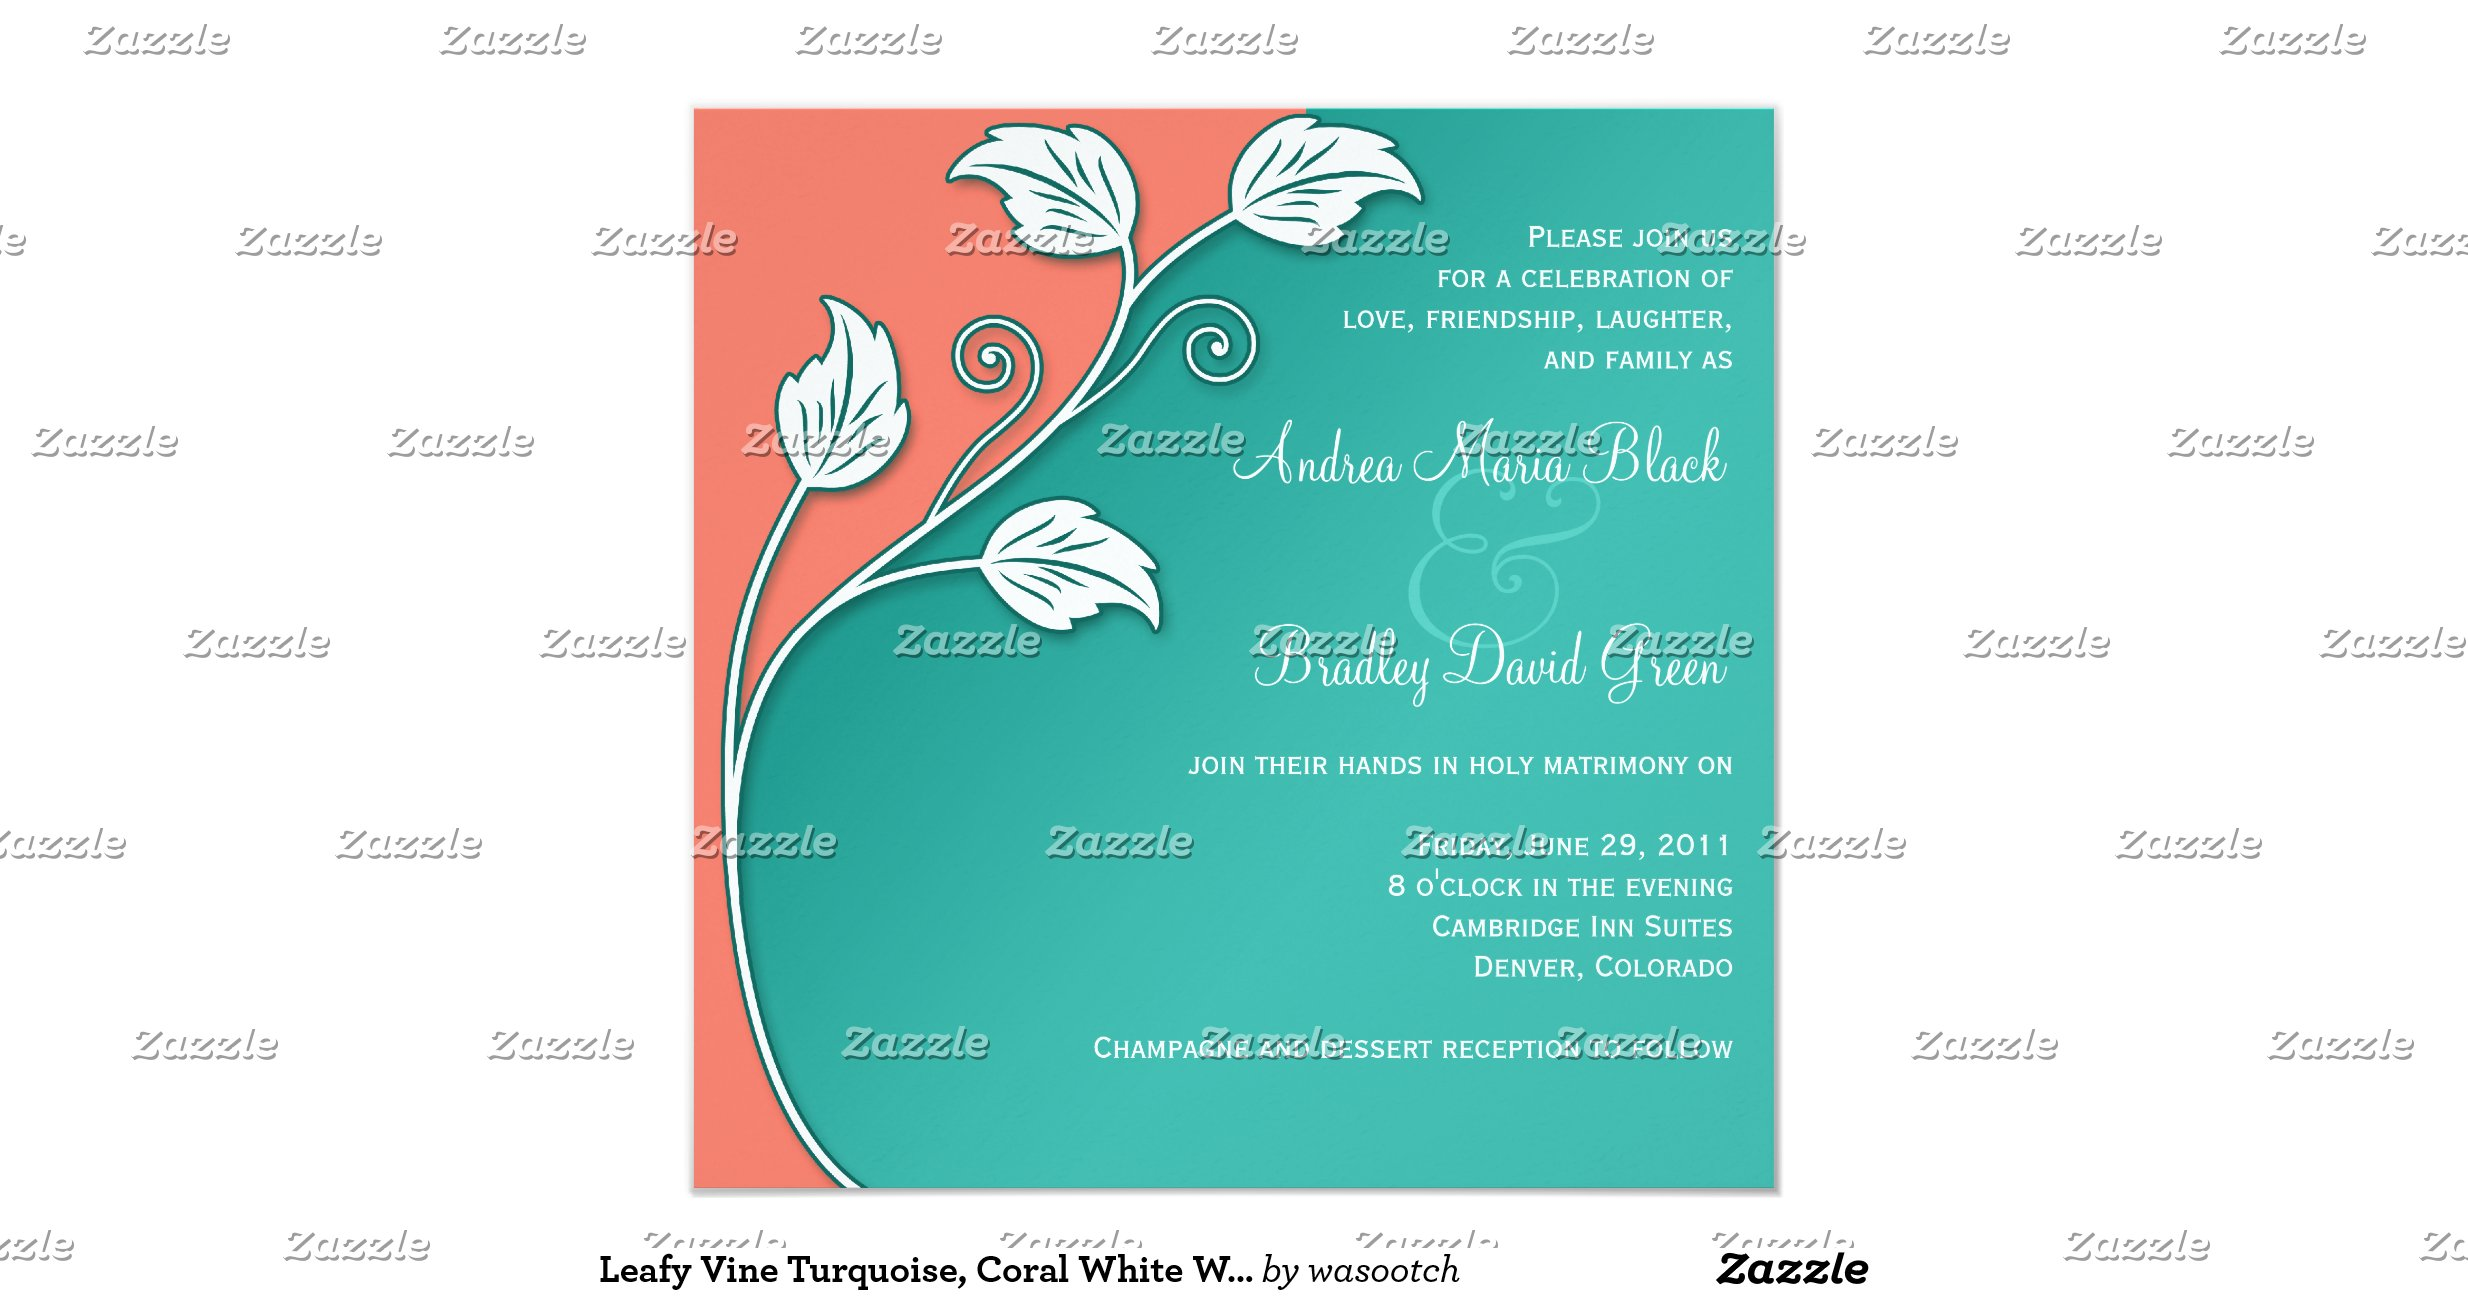 Turquoise And Coral Wedding Invitations: Leafy_vine_turquoise_coral_white_wedding_invitation